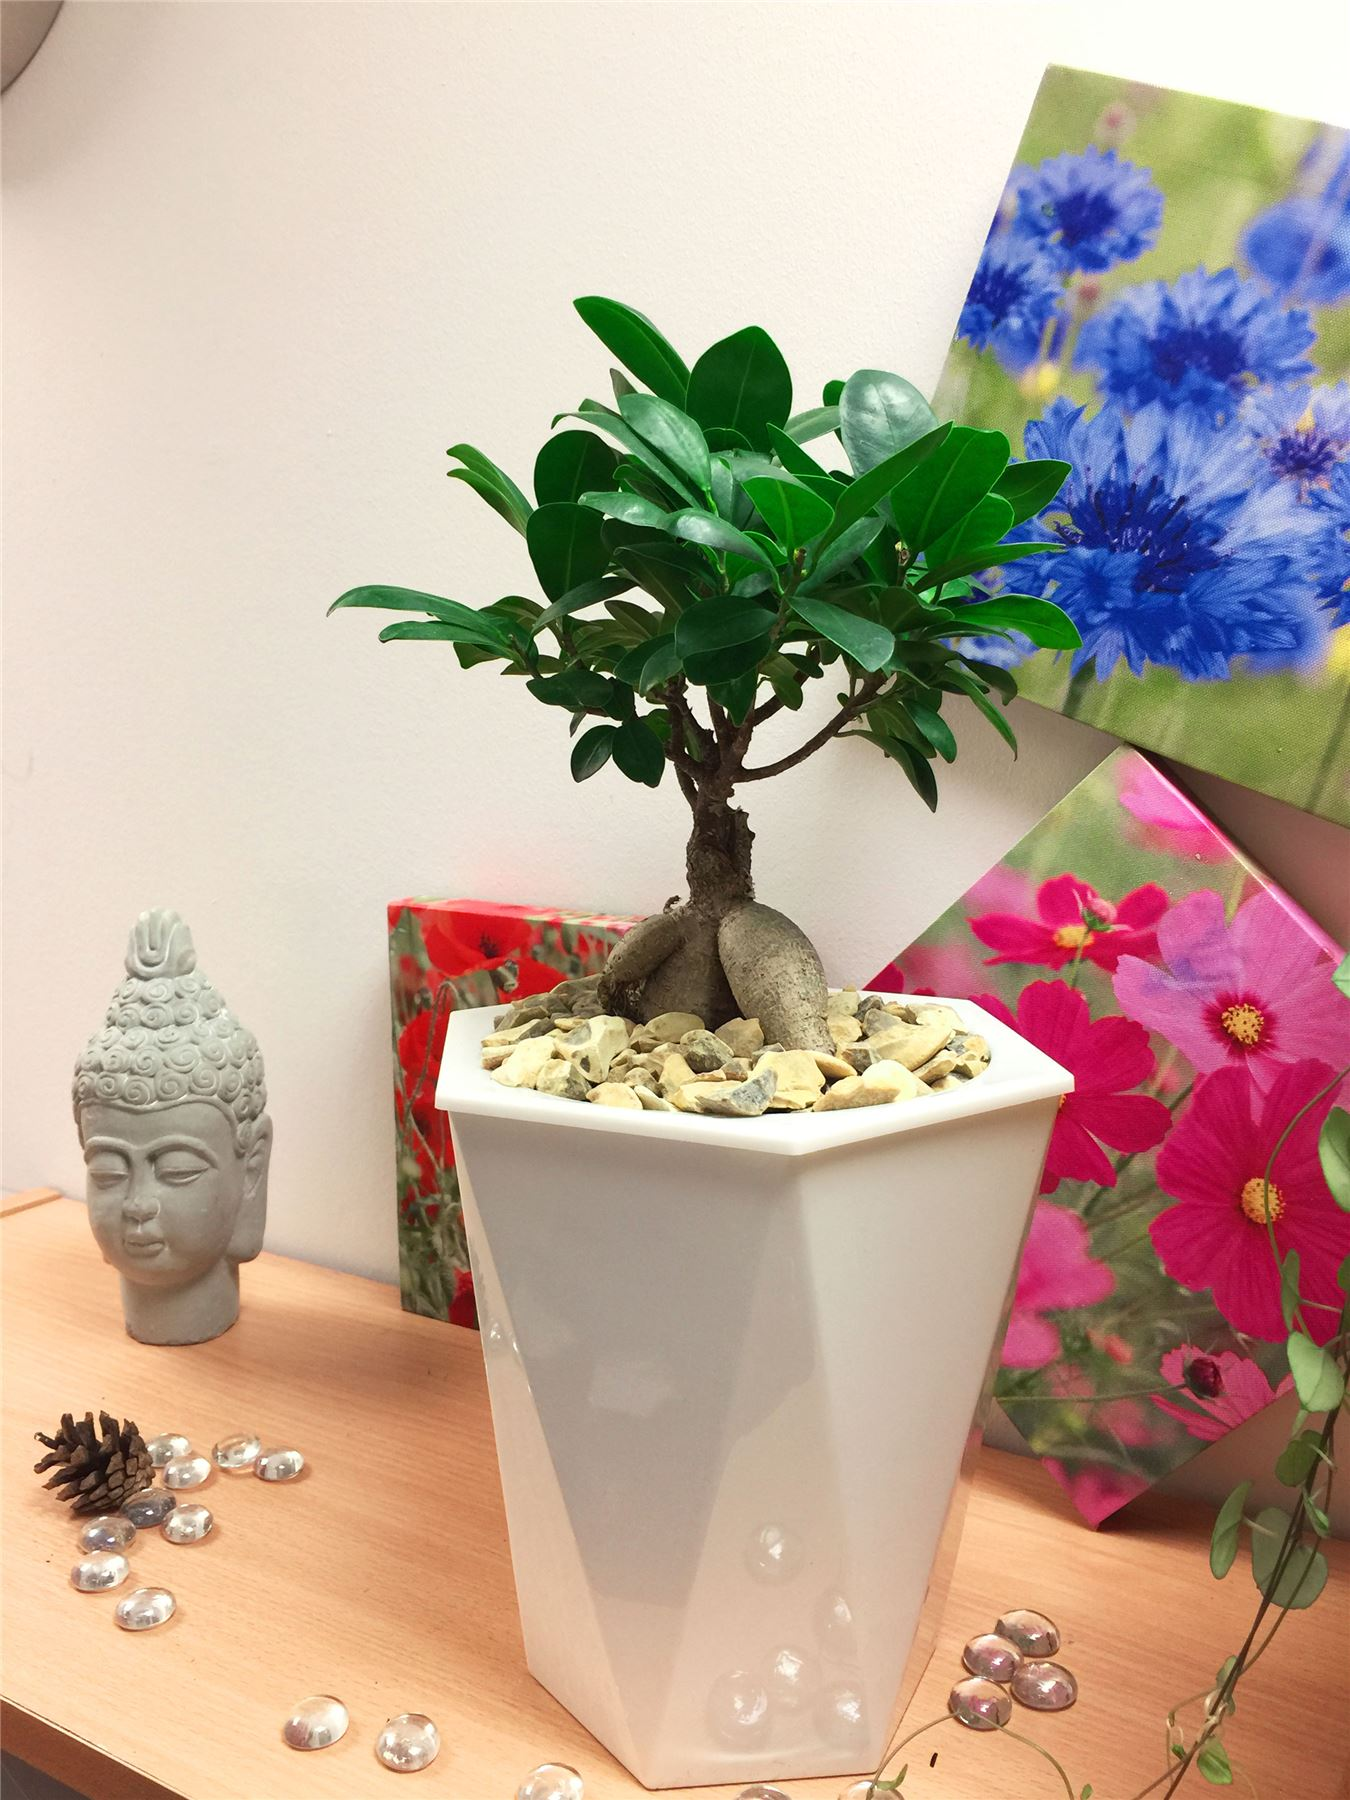 Ficus Ginseng Bonsai Details About Ficus Ginseng House Plant Bonsai Tree White Rhombus Self Watering Pot Gravel Top